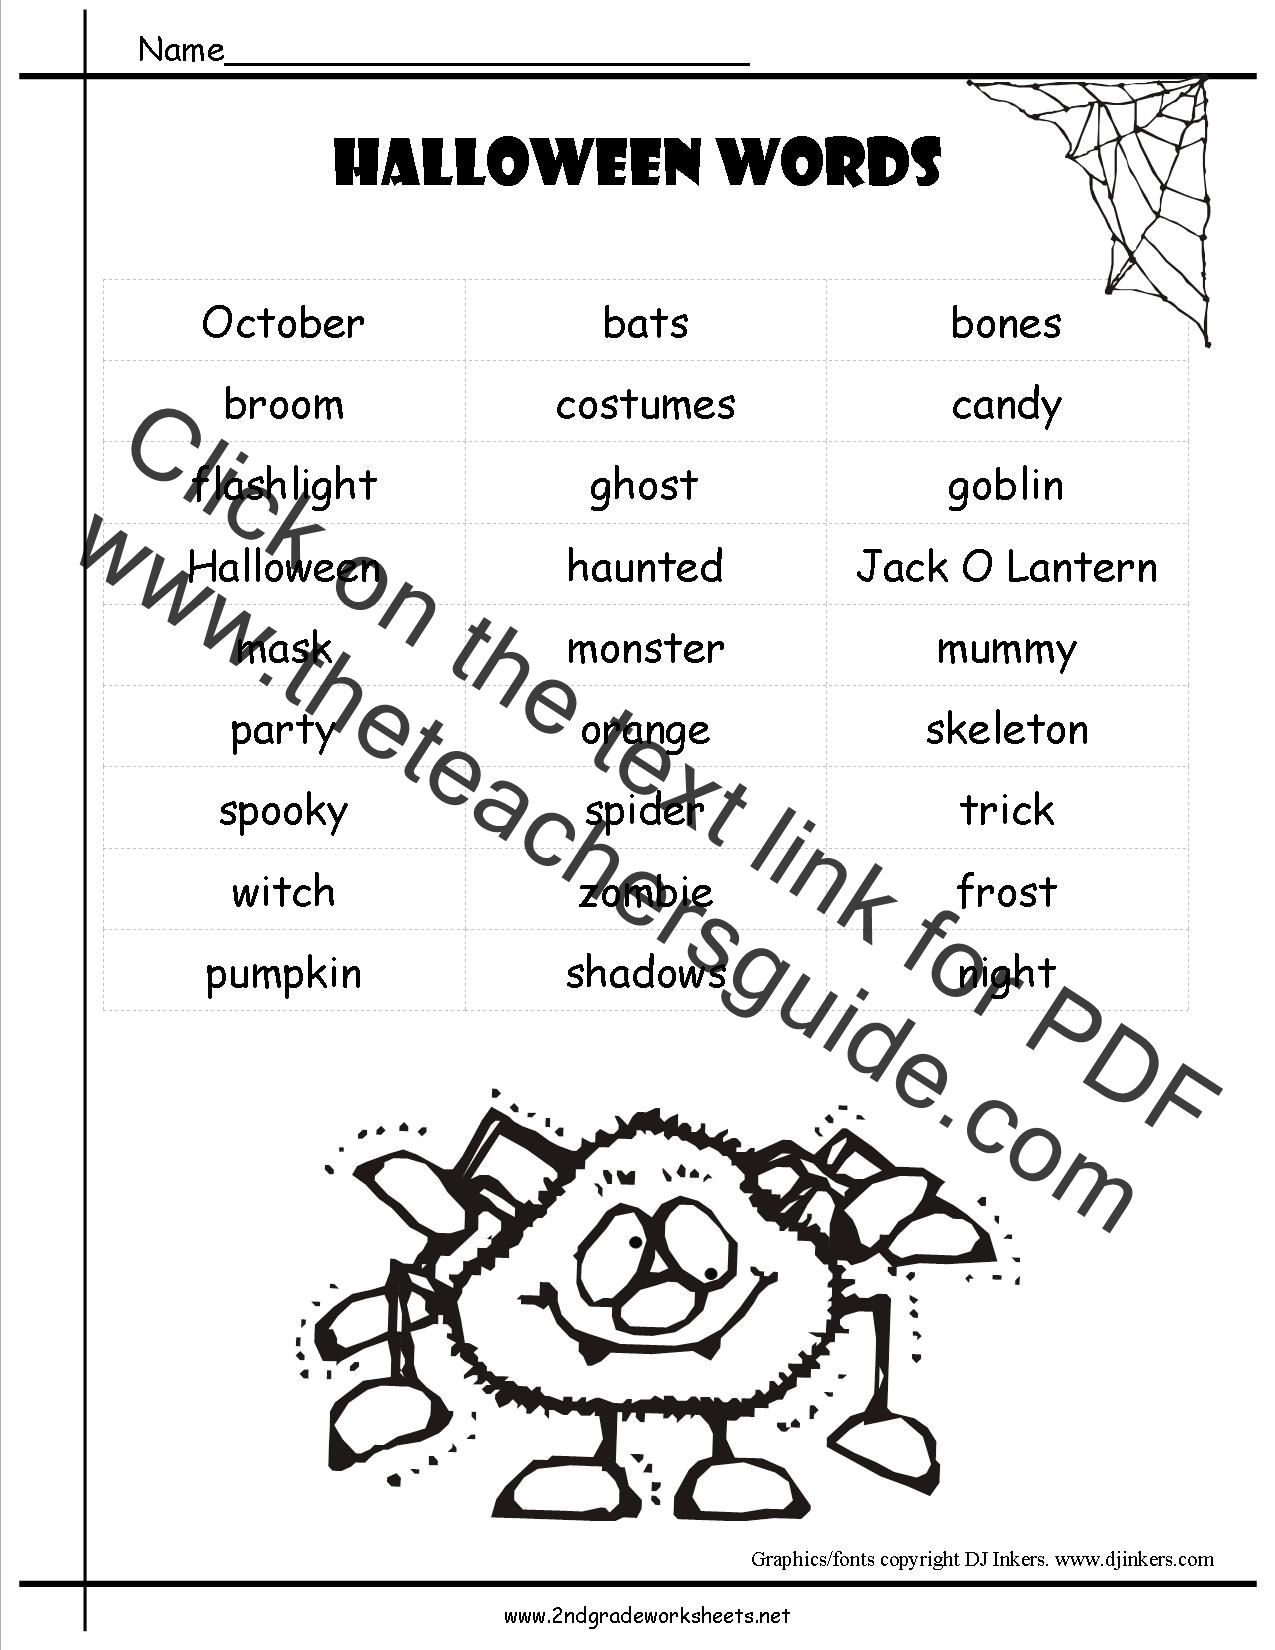 Verbs Worksheet Halloween